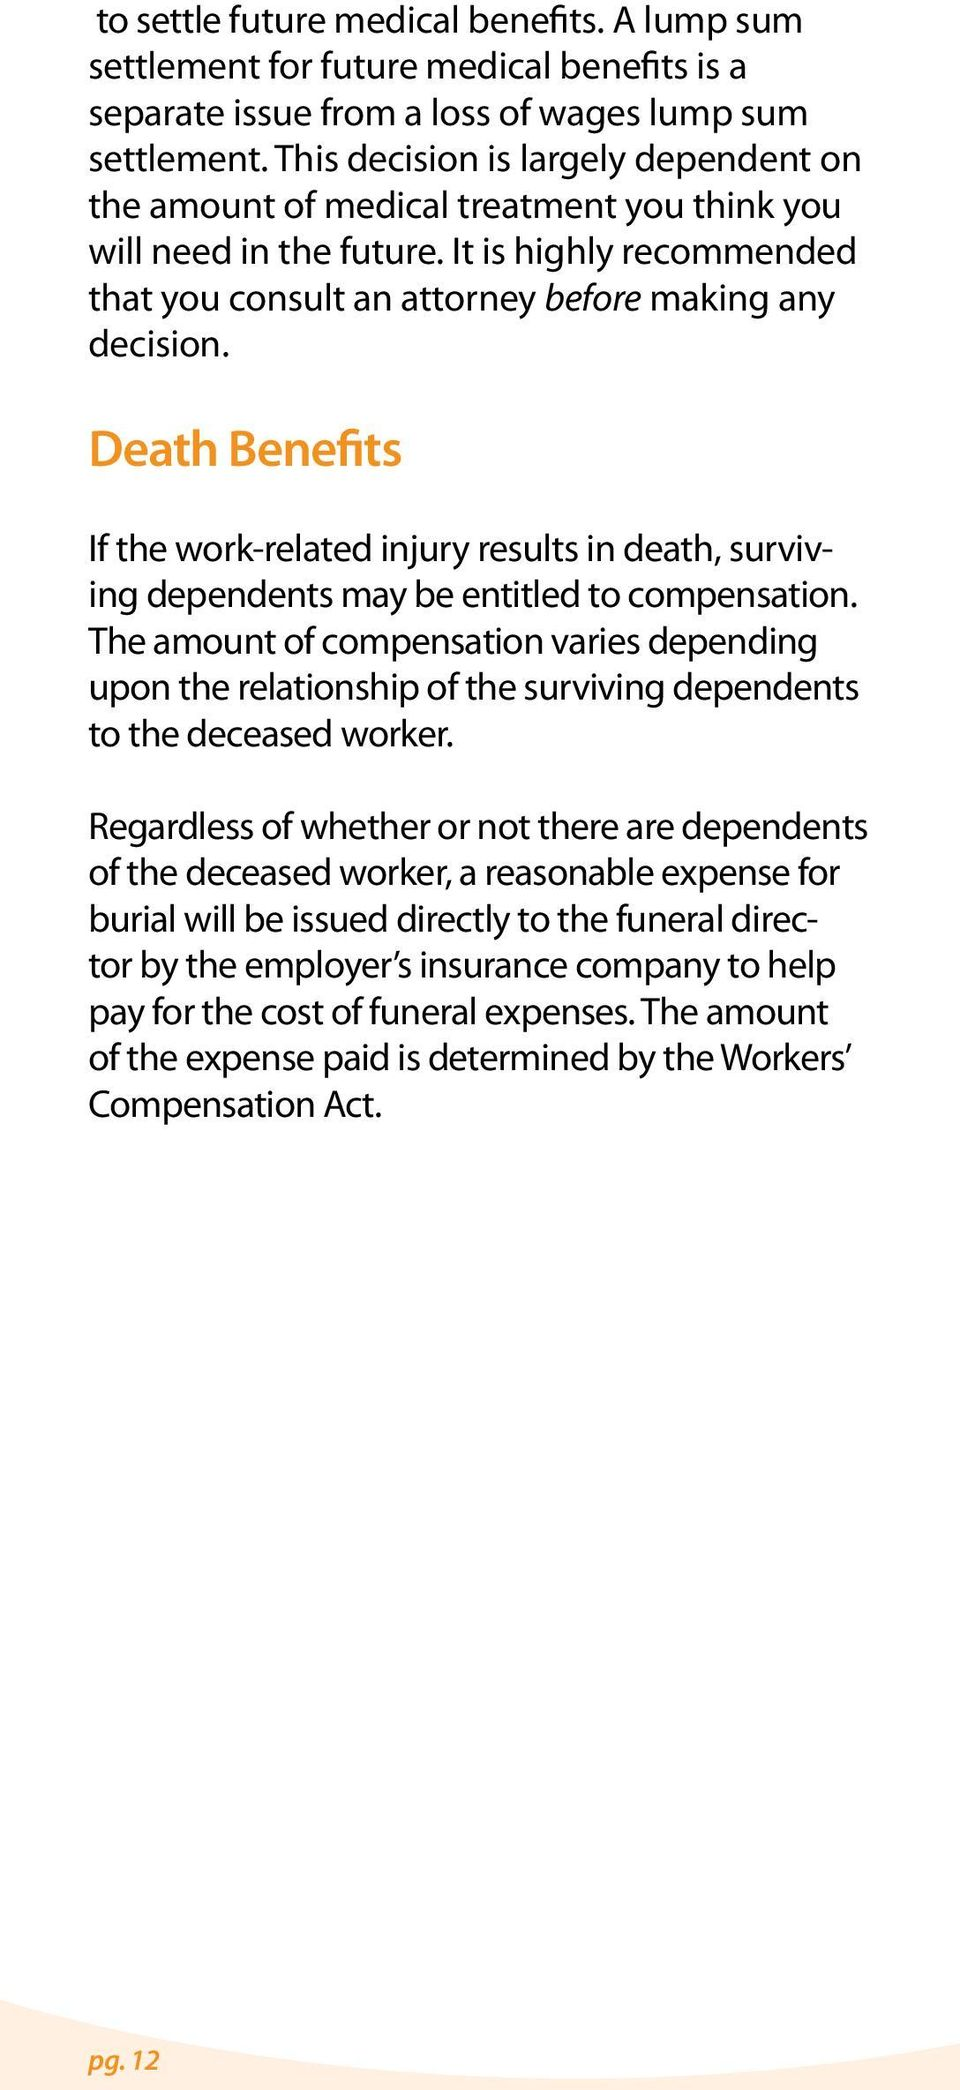 Death Benefits If the work-related injury results in death, surviving dependents may be entitled to compensation.